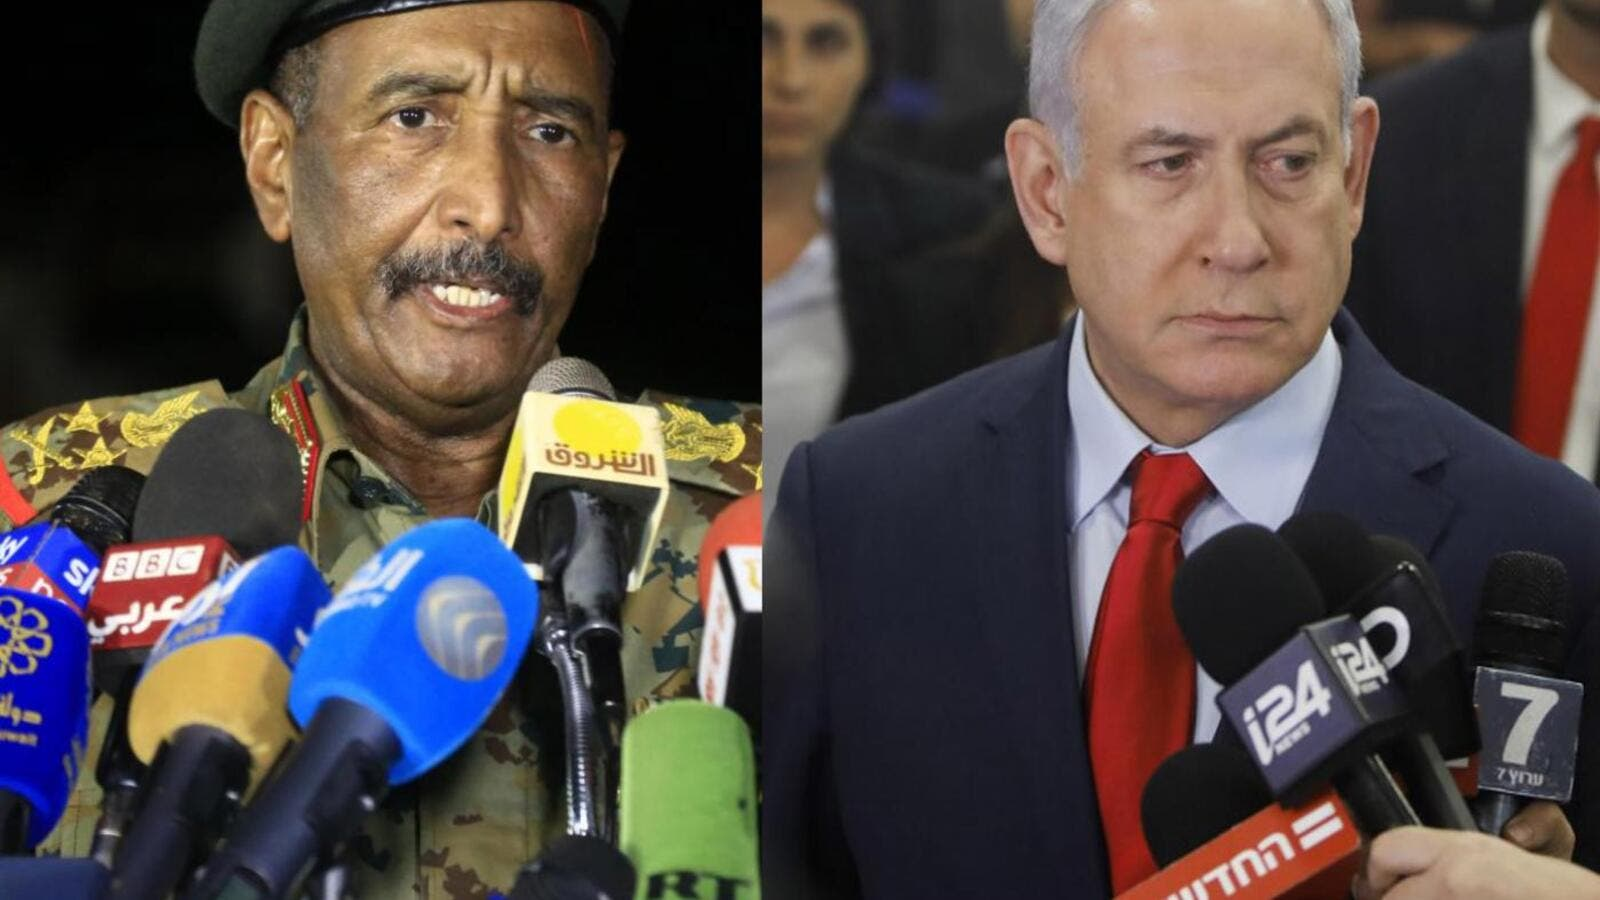 Israeli PM meets Sudan's leader, aims for 'normalization'